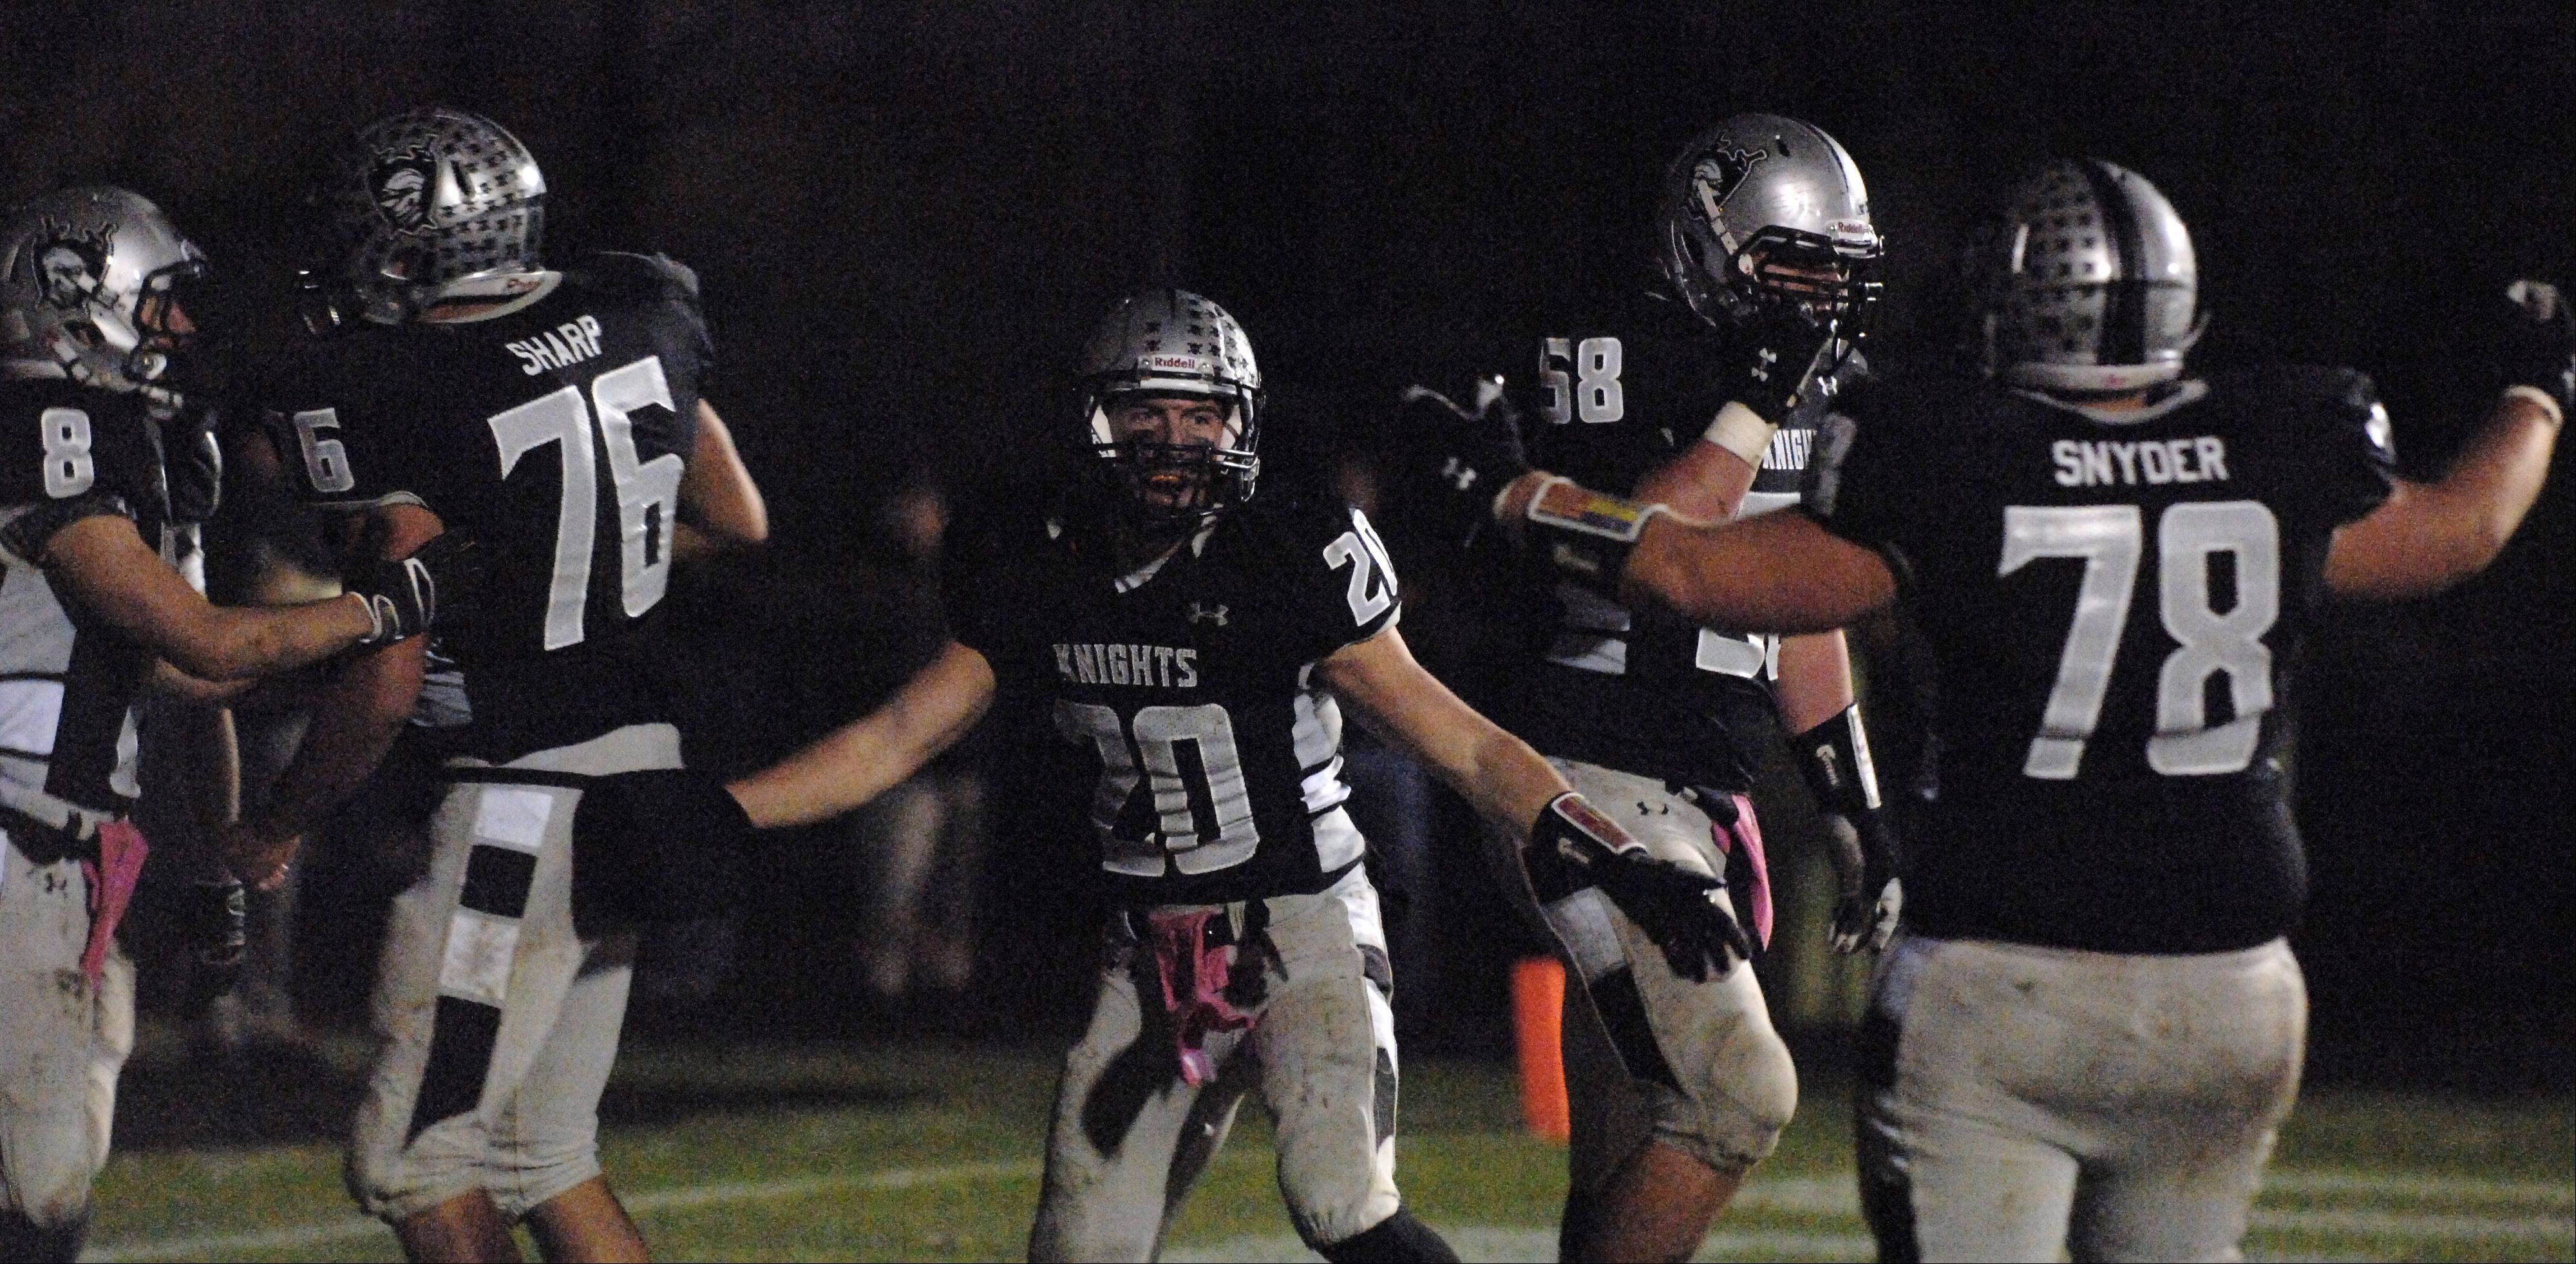 Kaneland's Dylan Nauert (20) and his teammates celebrate his touchdown during Friday's game in Maple Park.